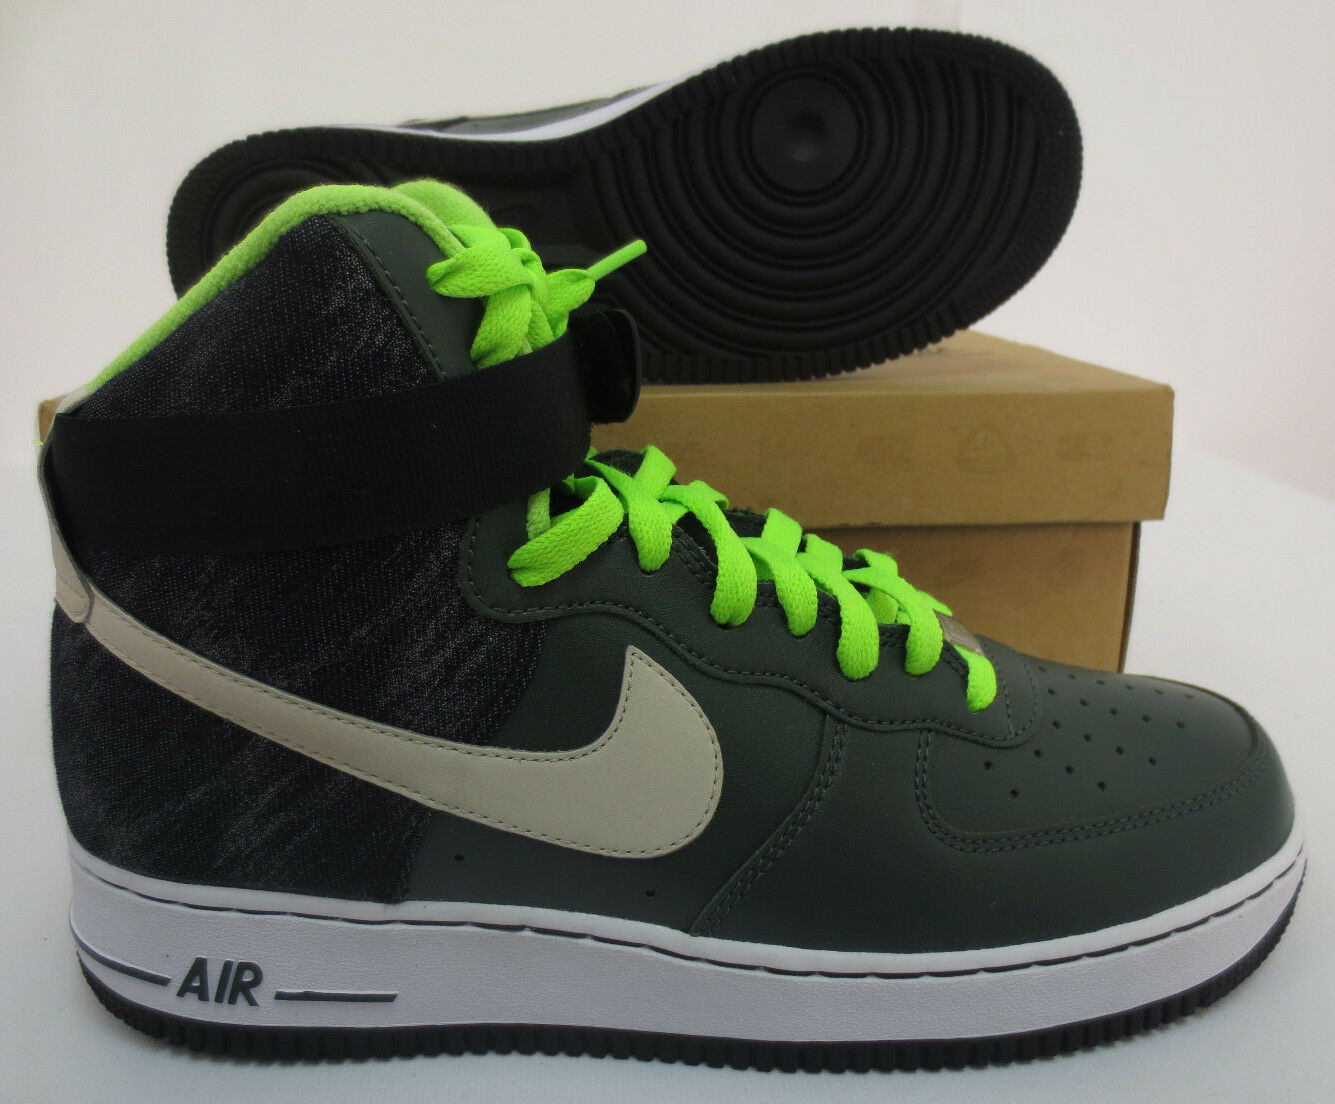 85d3f50749587 NIKE AIR FORCE 1 HIGH 07 MENS SIZE SIZE SIZE 10 SHOES 315121 302 ATHLETIC  SNEAKERS